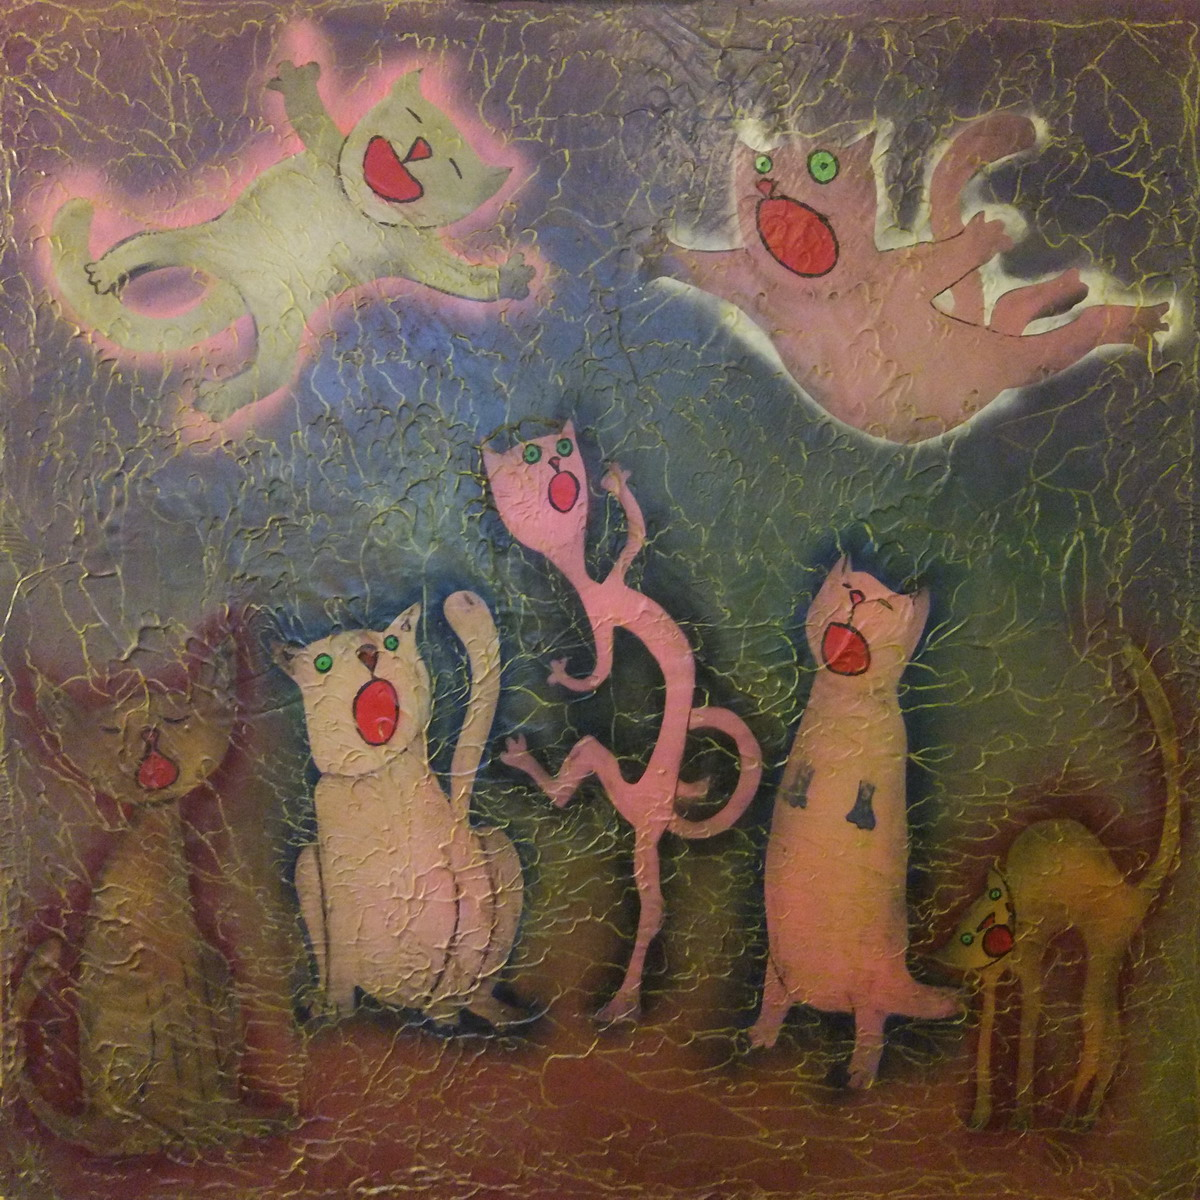 Miserable Cats /Жалкие Коты/ 2018/Acrylics on canvas/100x100 cm